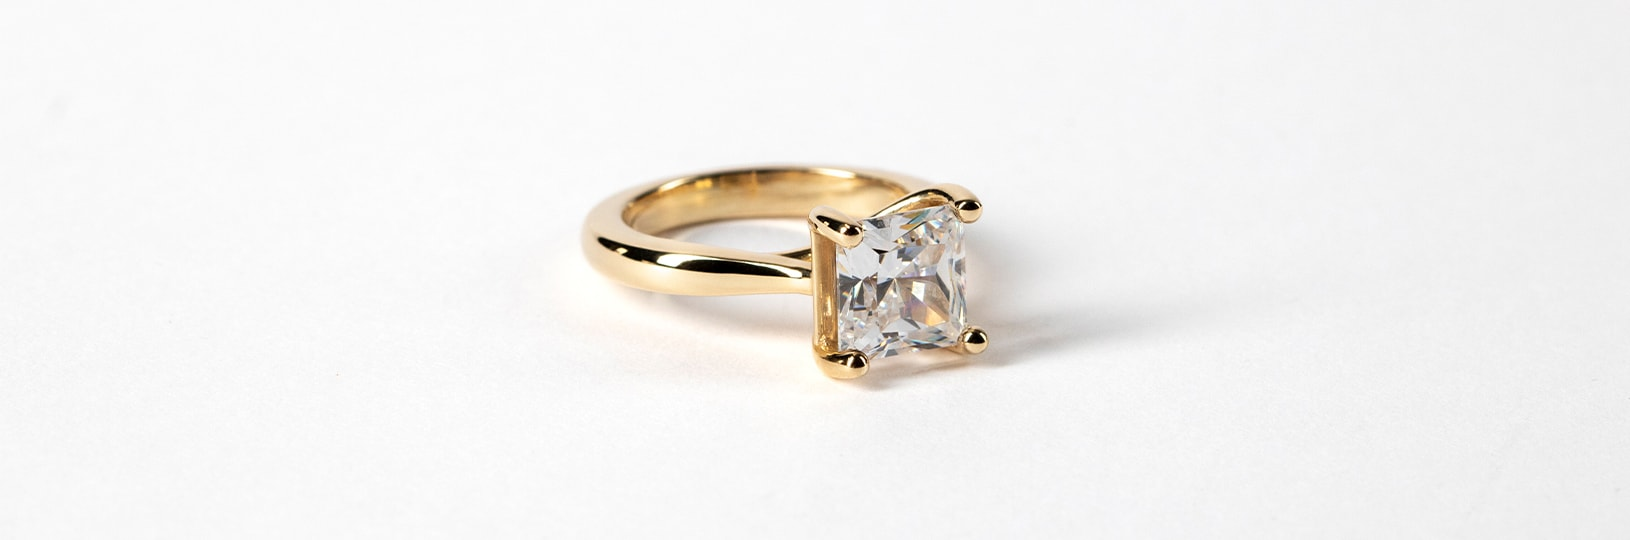 small yellow gold engagement ring